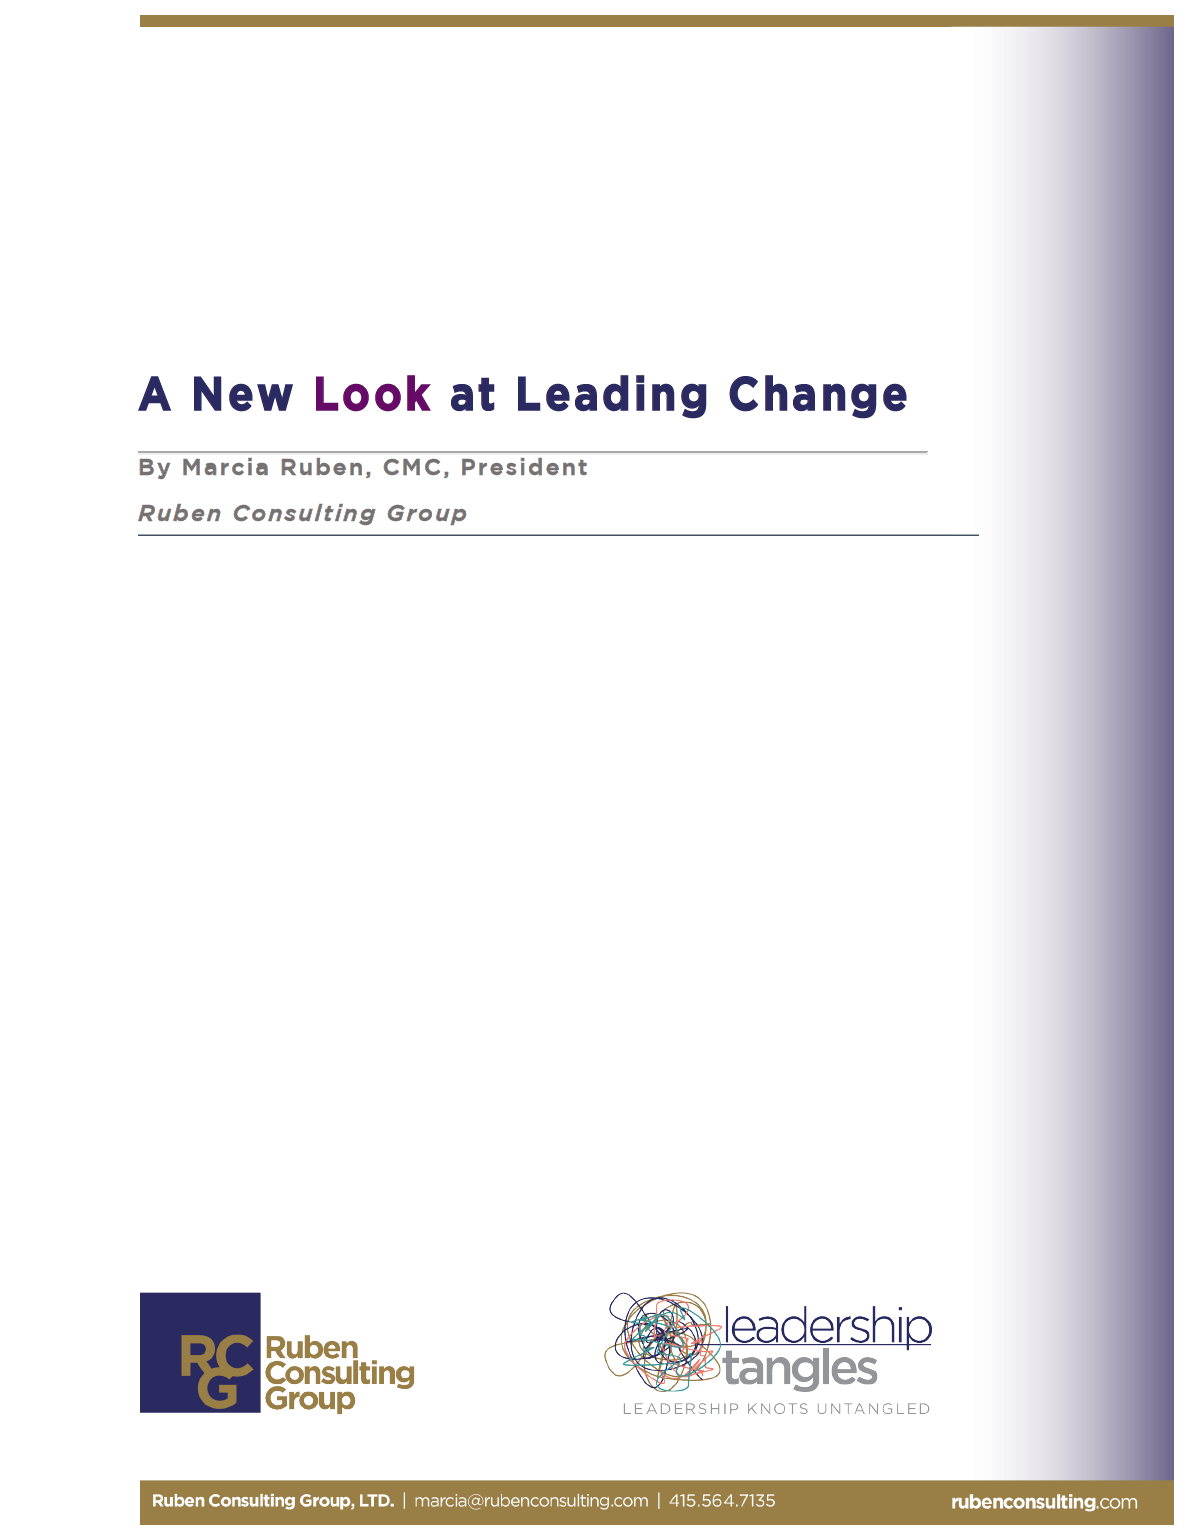 A New Look at Leading Change